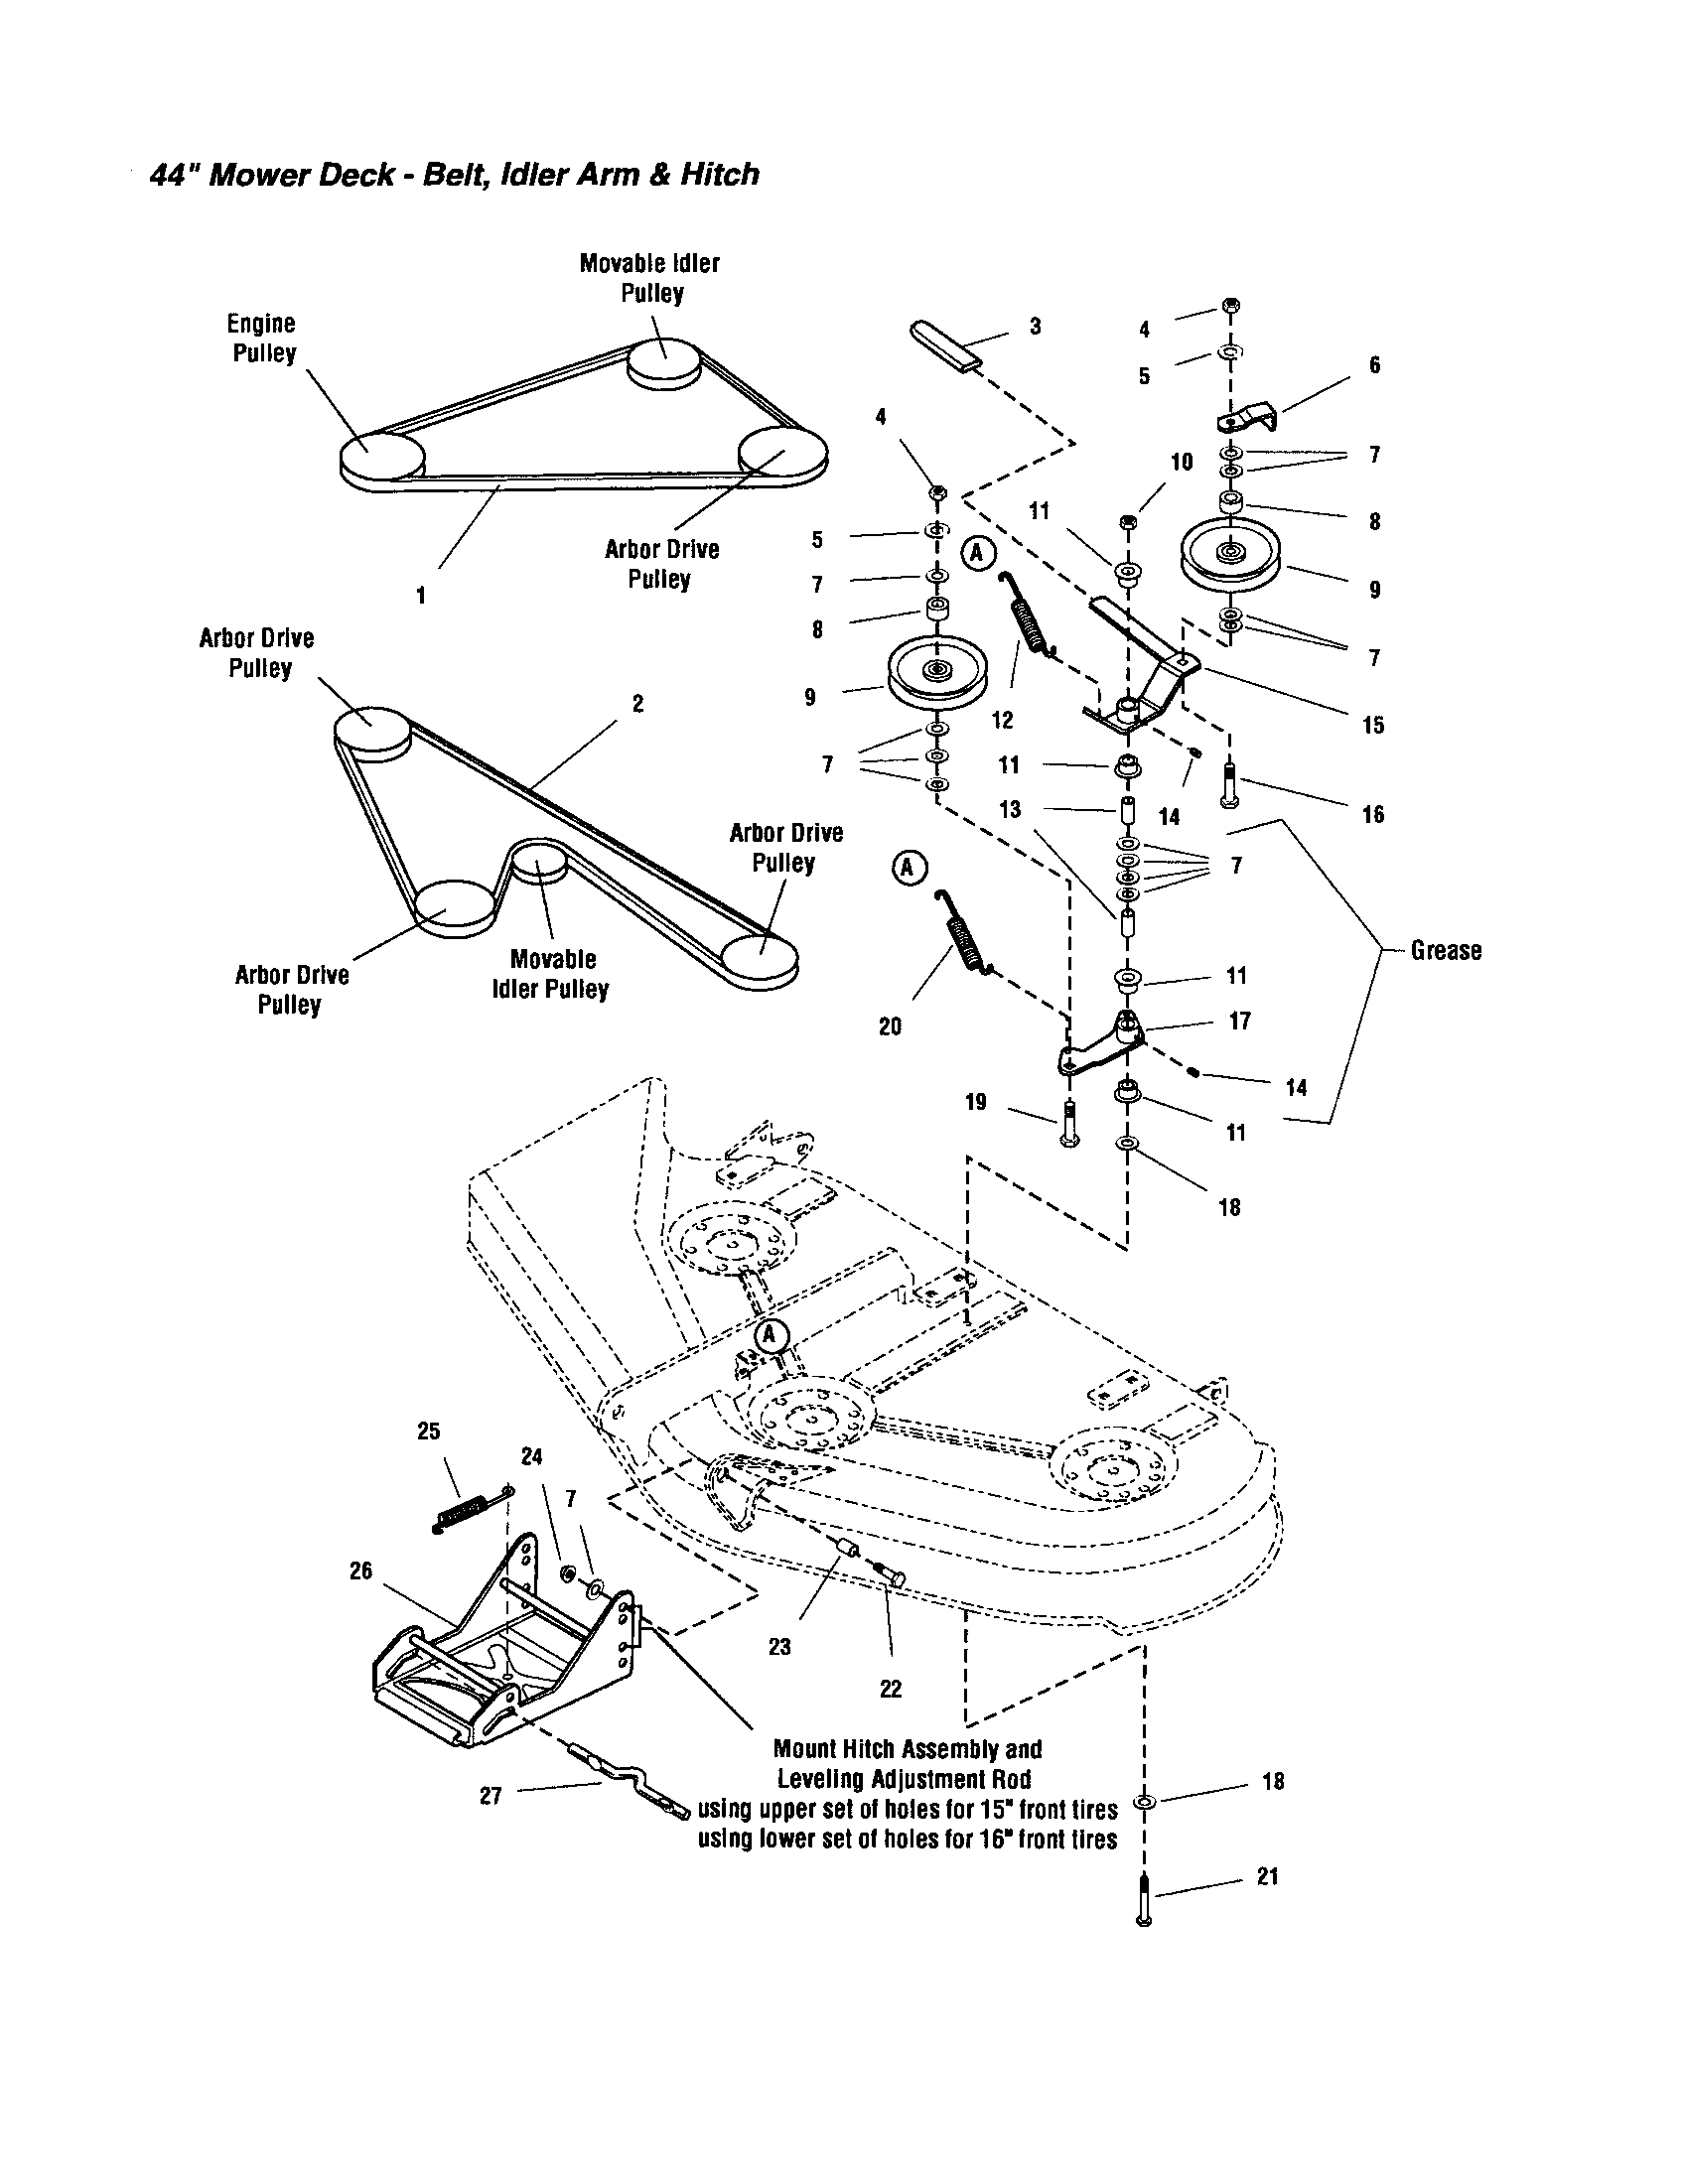 Snapper Belt Replacement Diagram : snapper, replacement, diagram, Snapper, LT1644, Front-engine, Tractor, Parts, Sears, PartsDirect